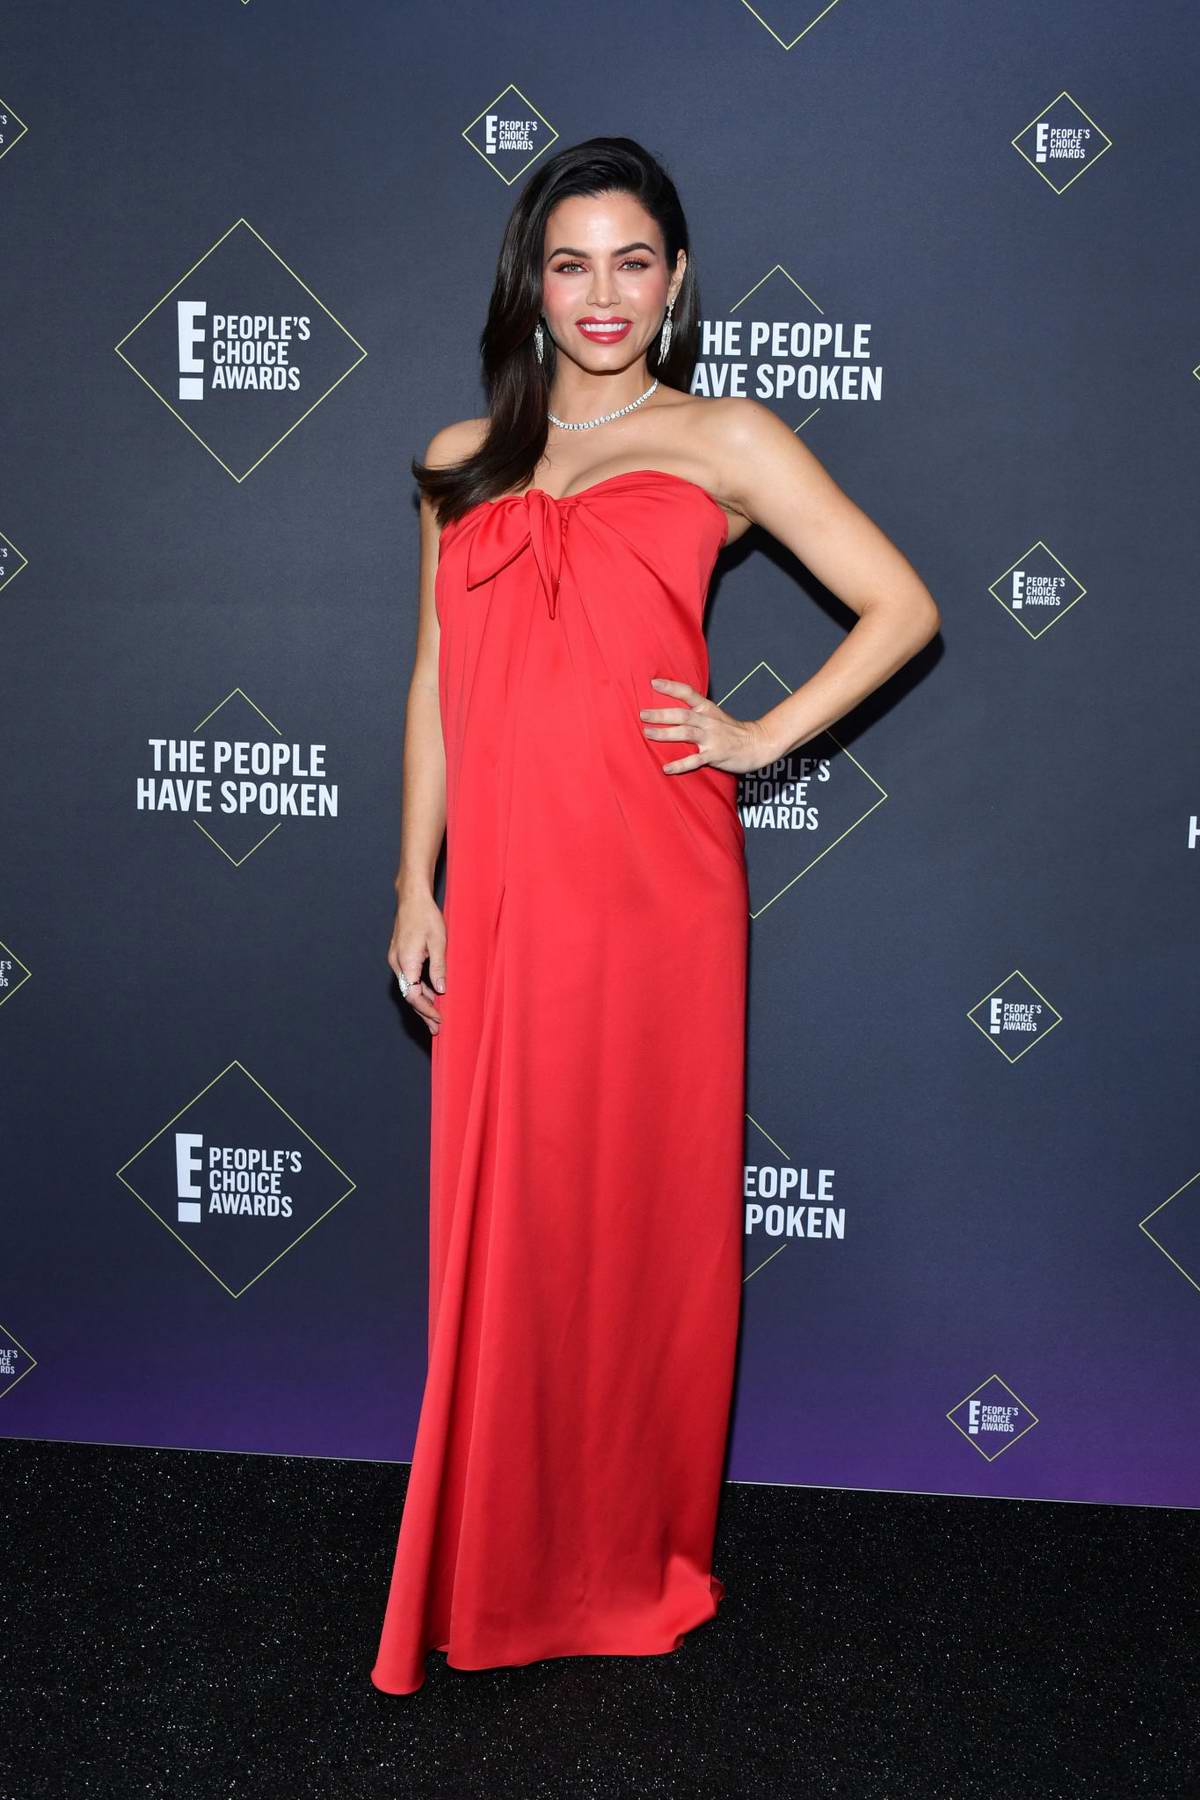 Jenna Dewan attends the 2019 E! People's Choice Awards held at the Barker Hangar in Santa Monica, California